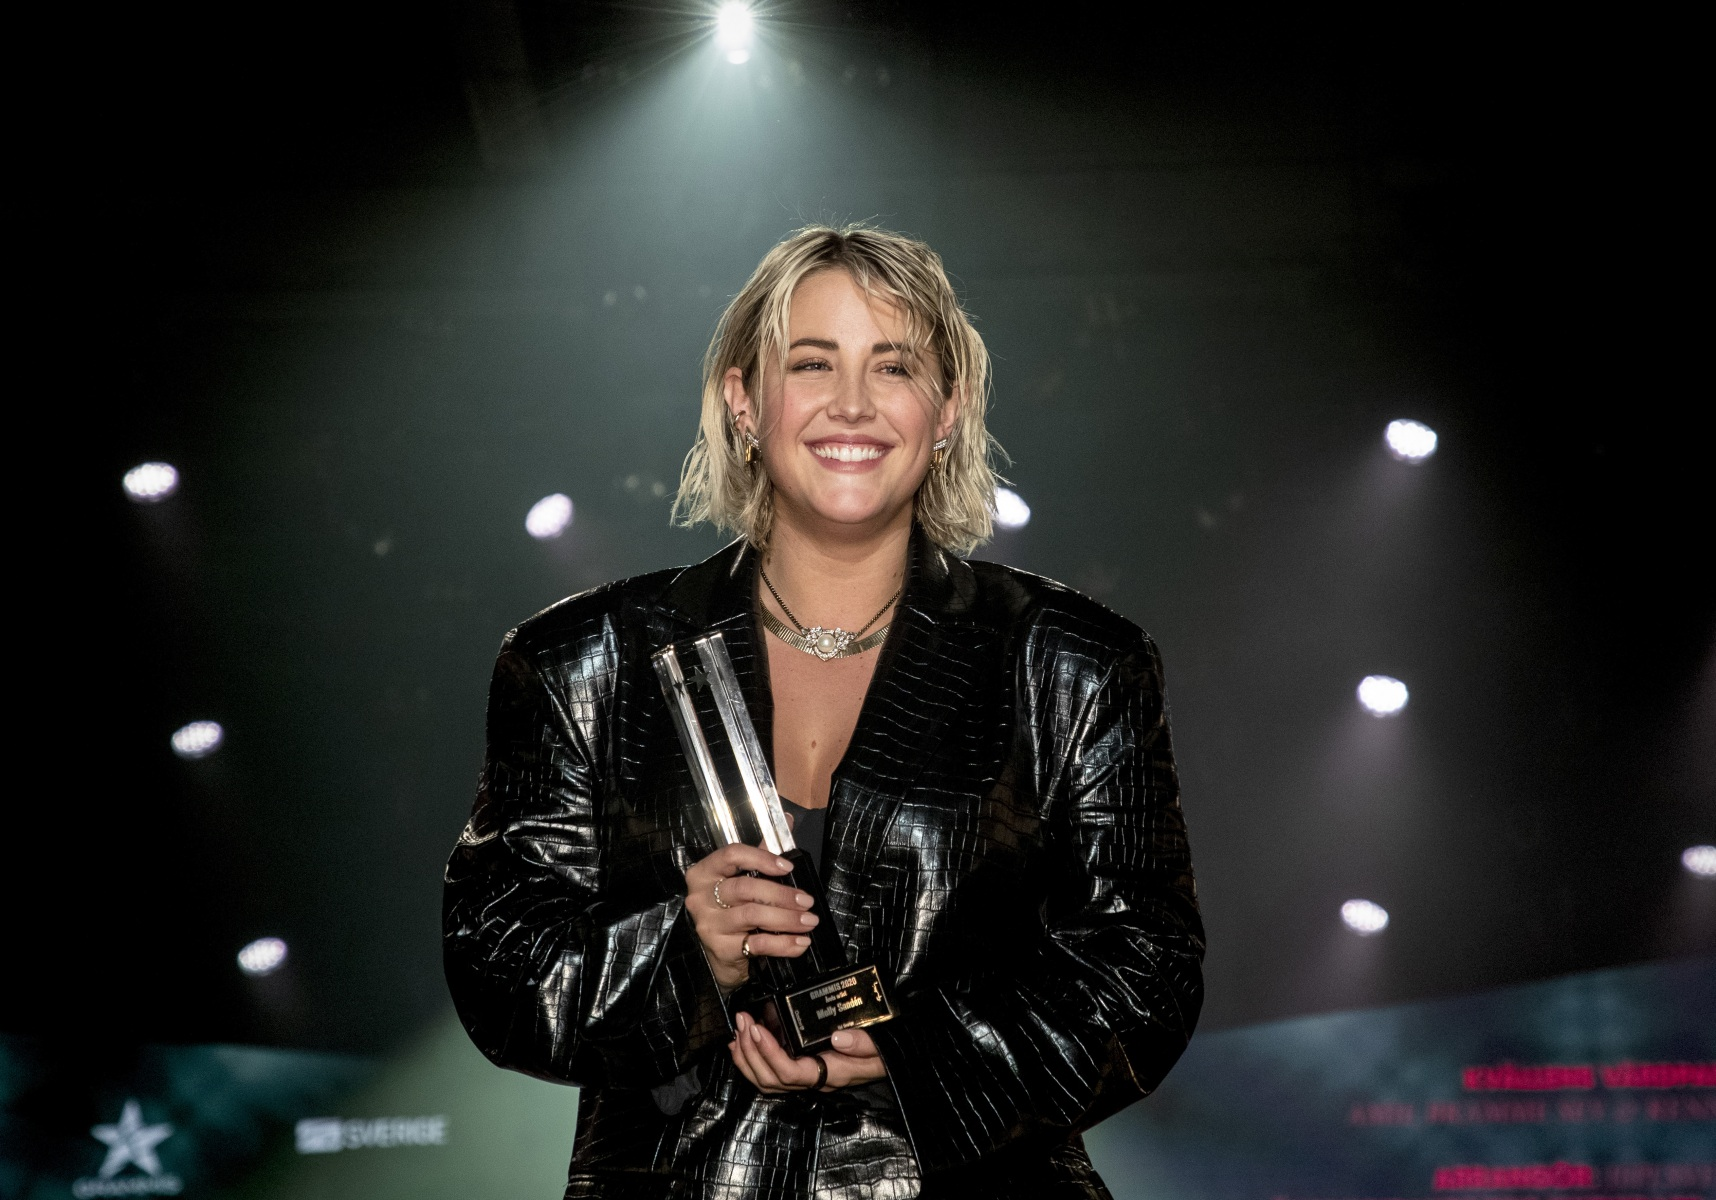 Molly Sandén receives a Swedish Grammy 2020